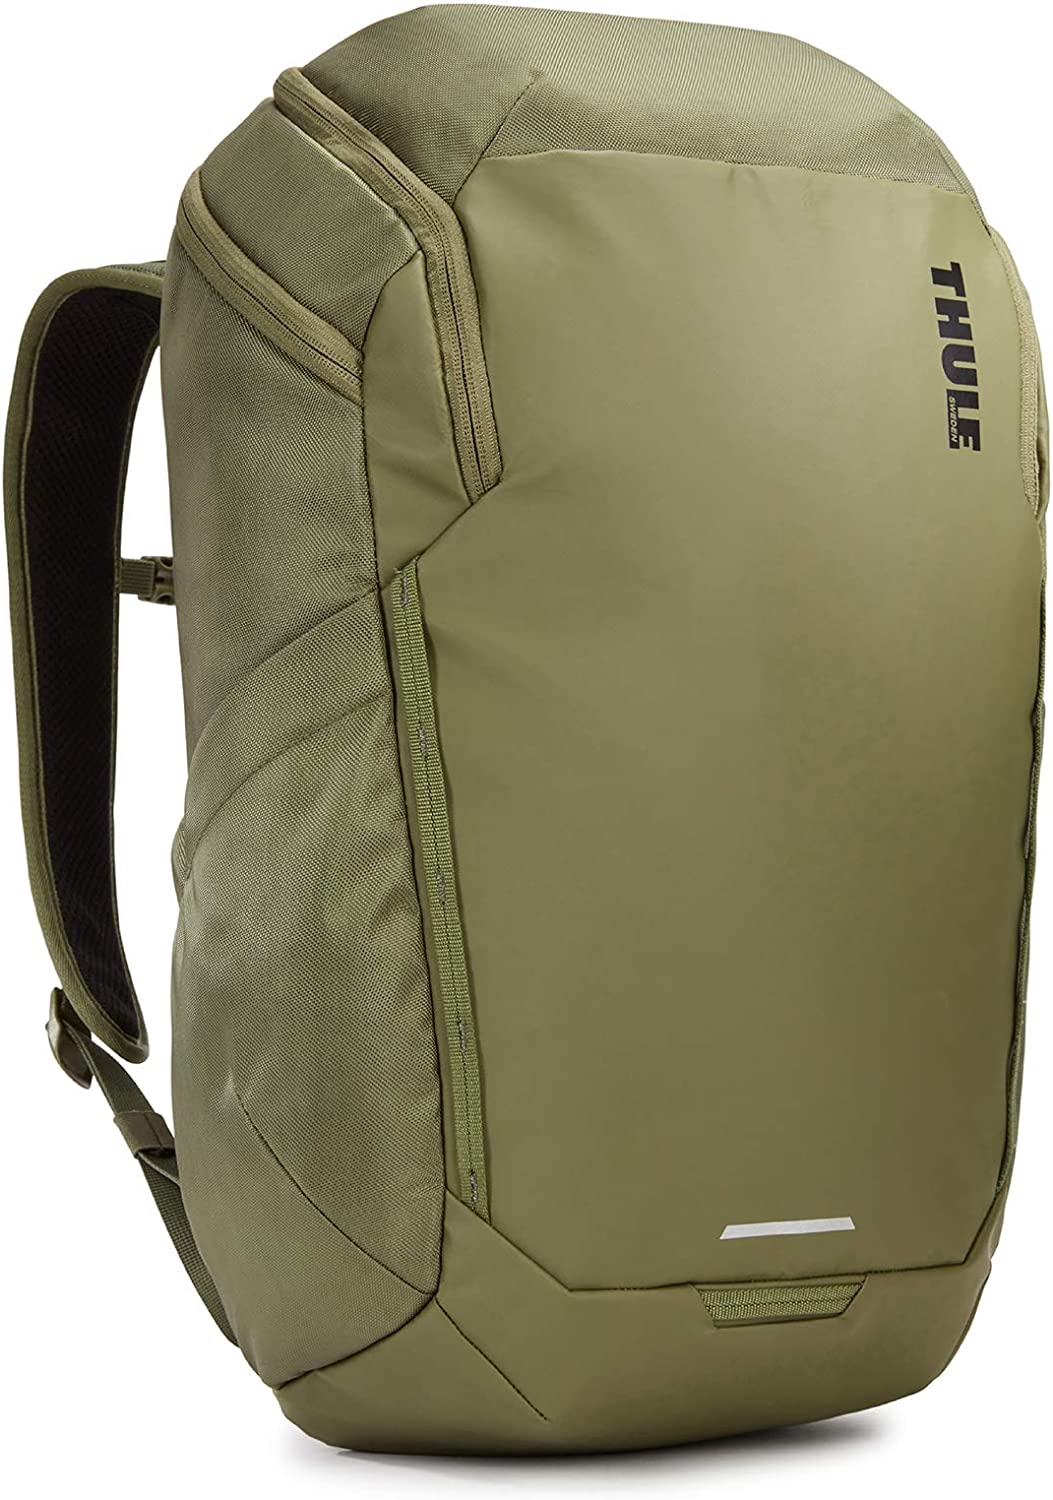 Thule Chasm Backpack Bolso, Unisex Adulto, Olivine, 26L: Amazon.es: Deportes y aire libre